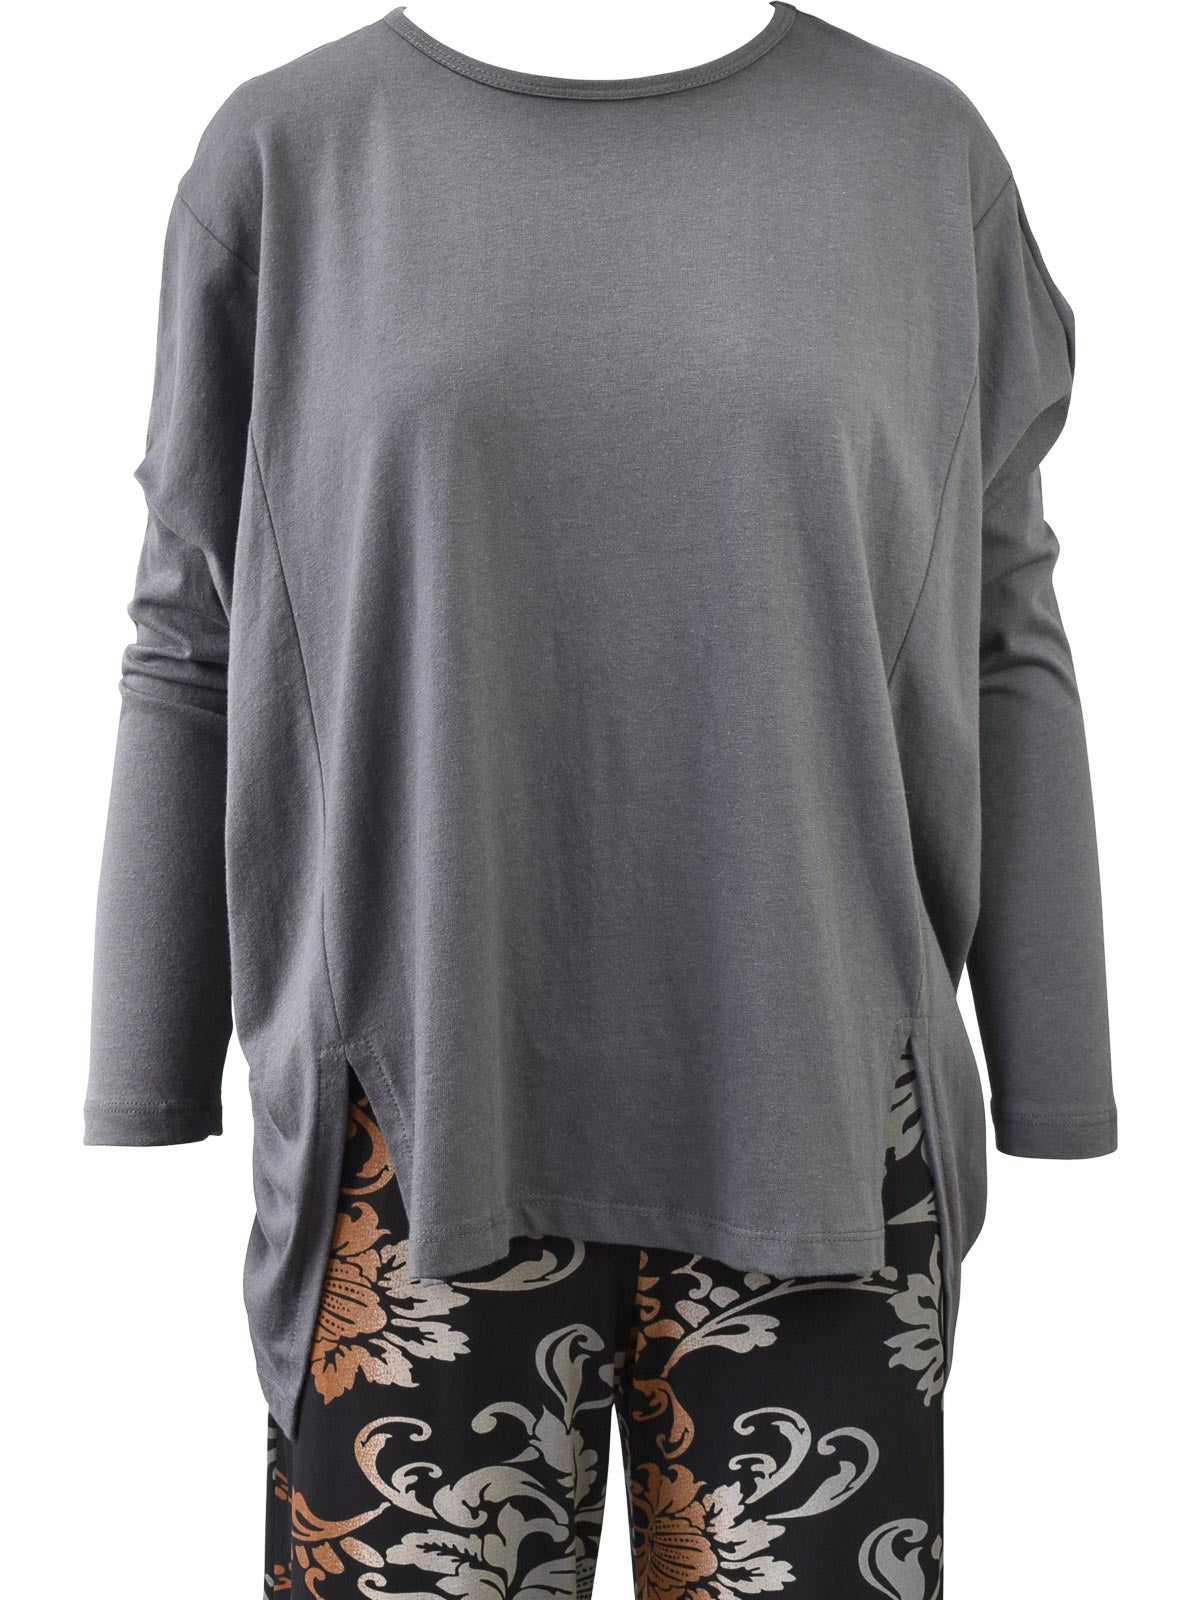 Clara Sunwoo Modal Cotton Oversized Tunic, Charcoal